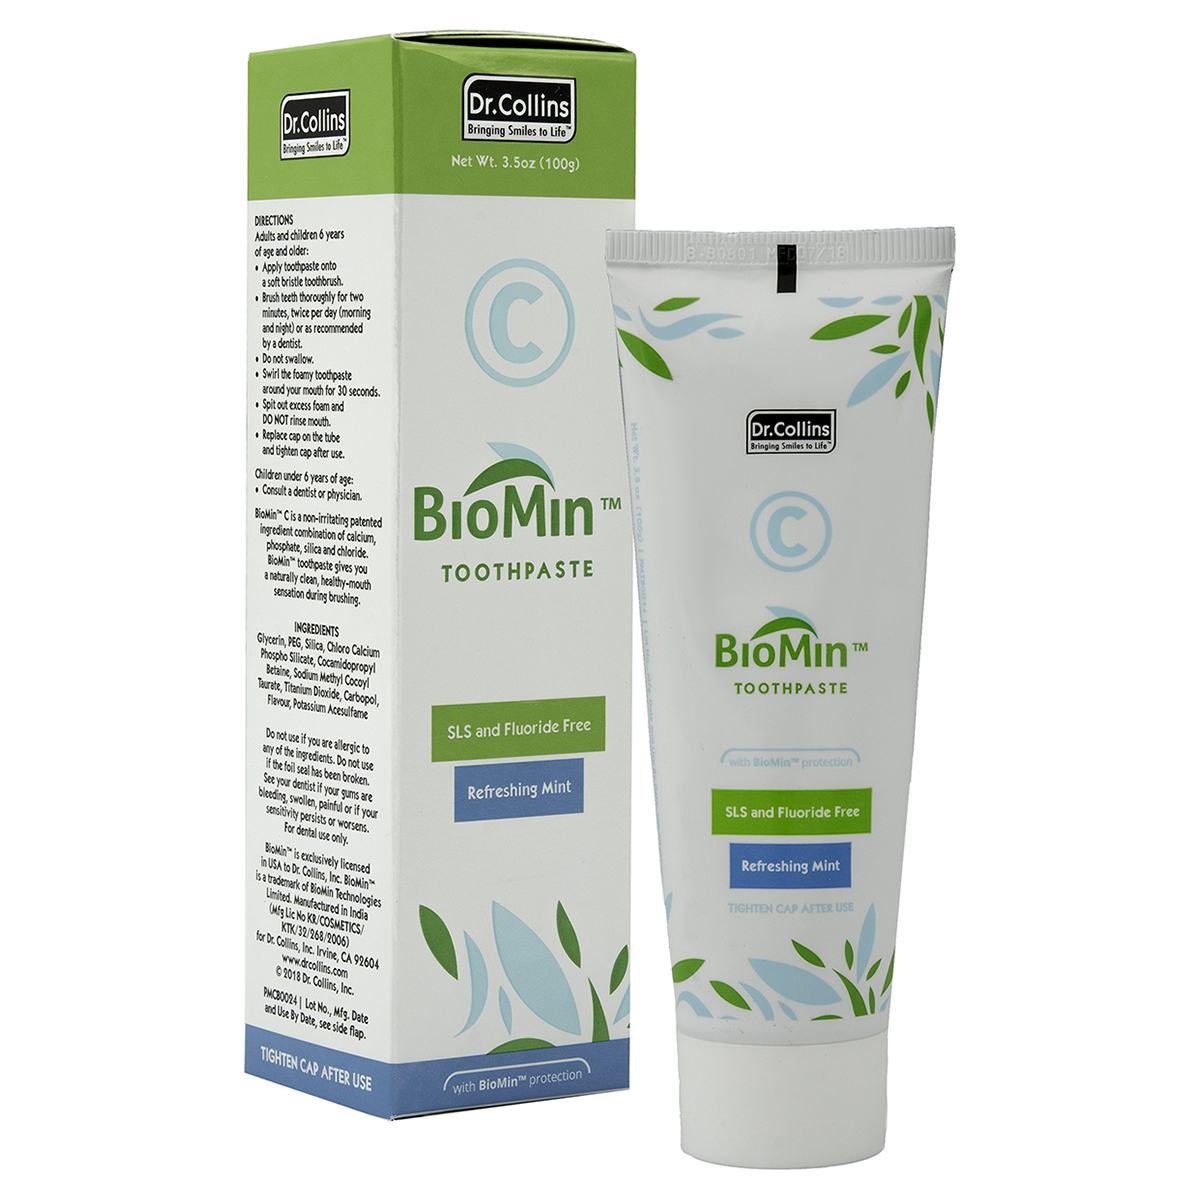 Dr Collins BioMin Toothpaste Receives FDA Approval